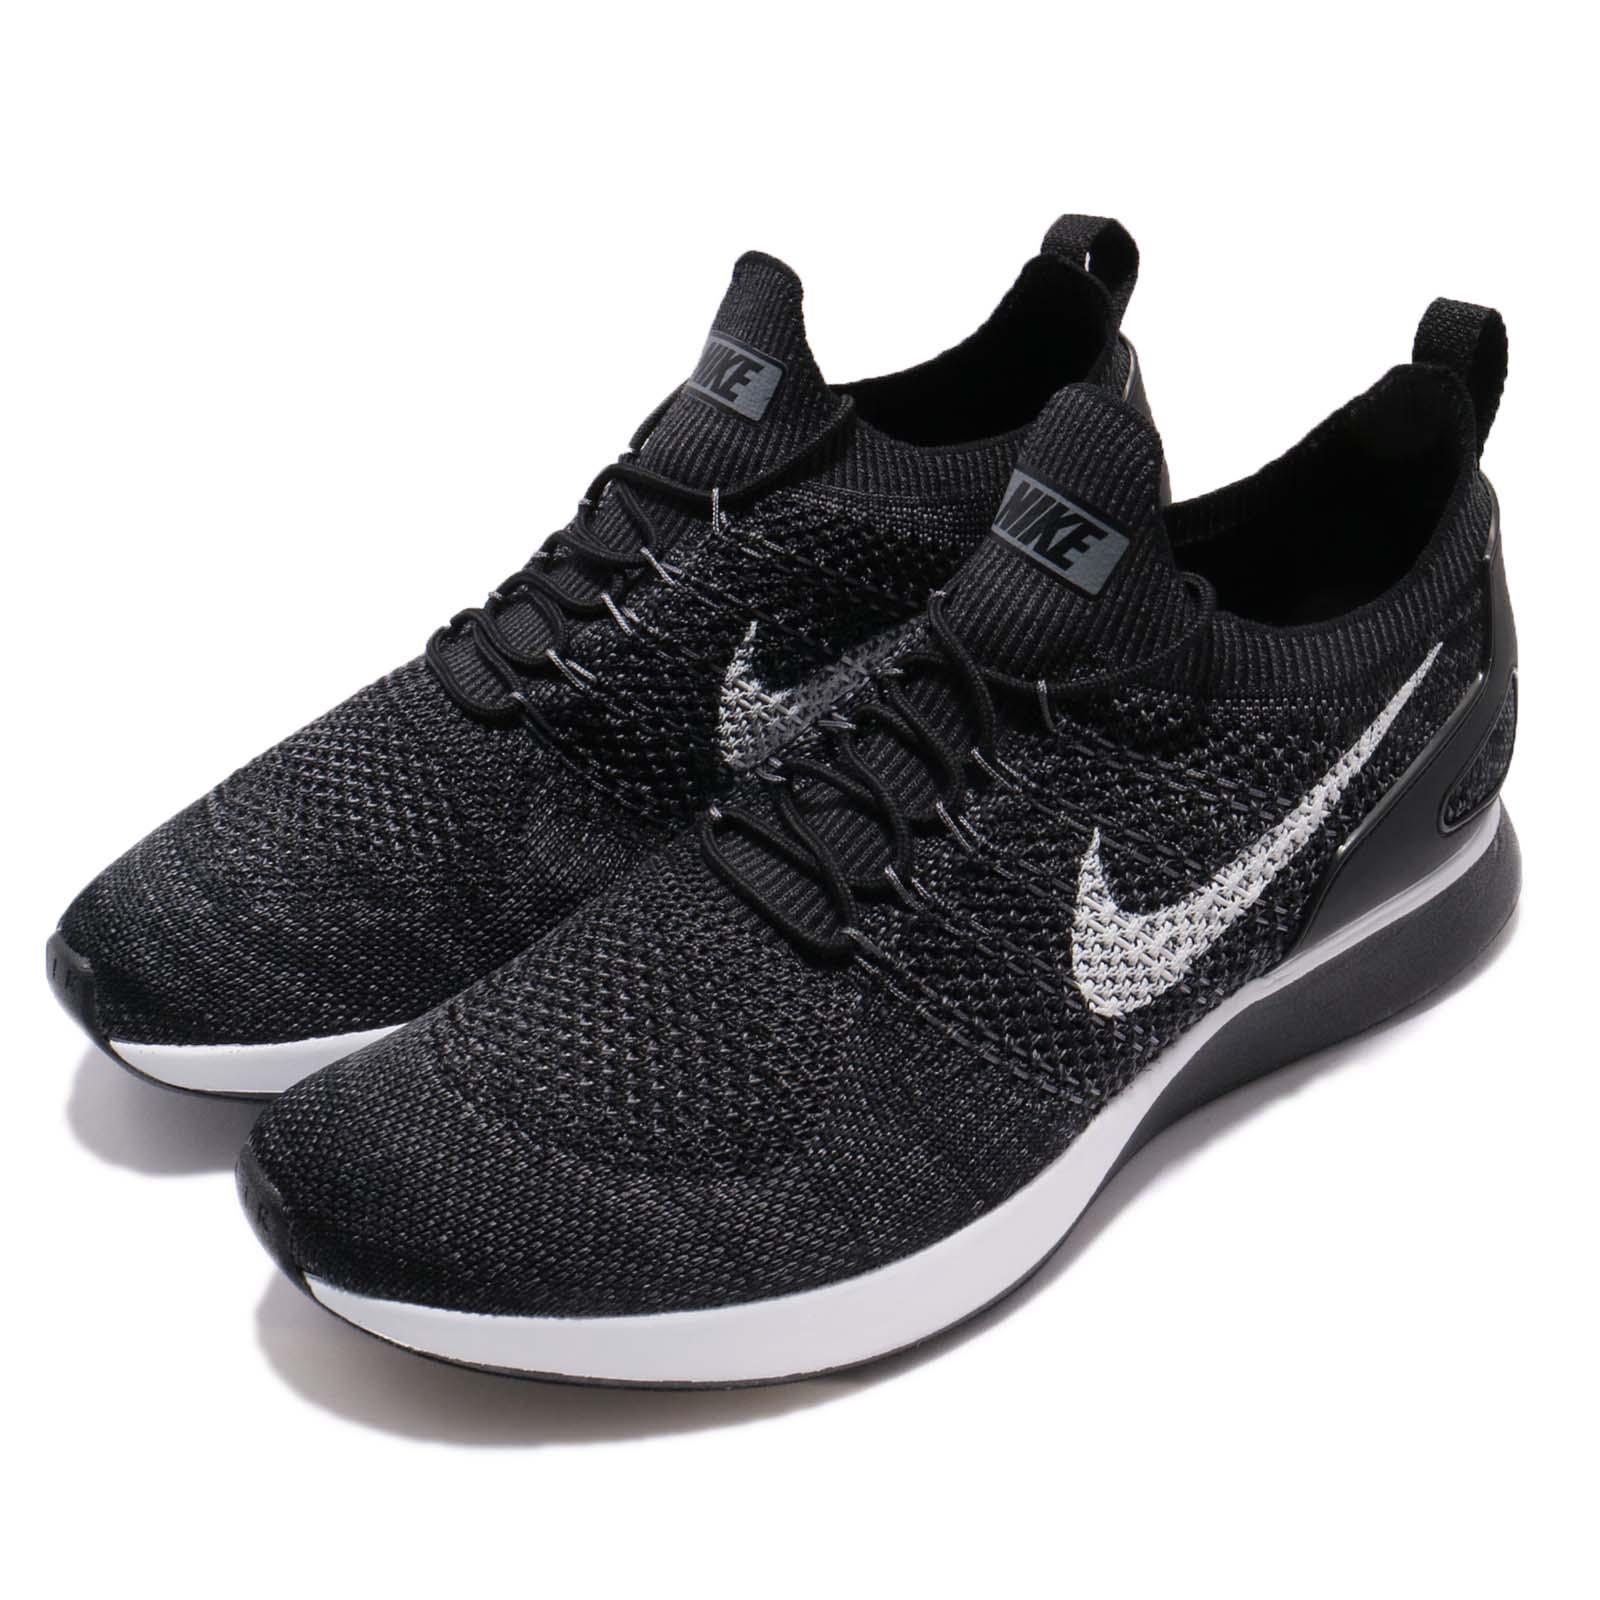 7eabbba58477 Details about Nike Air Zoom Mariah Flyknit Racer Black Pure Platinum Men  Running 918264-010